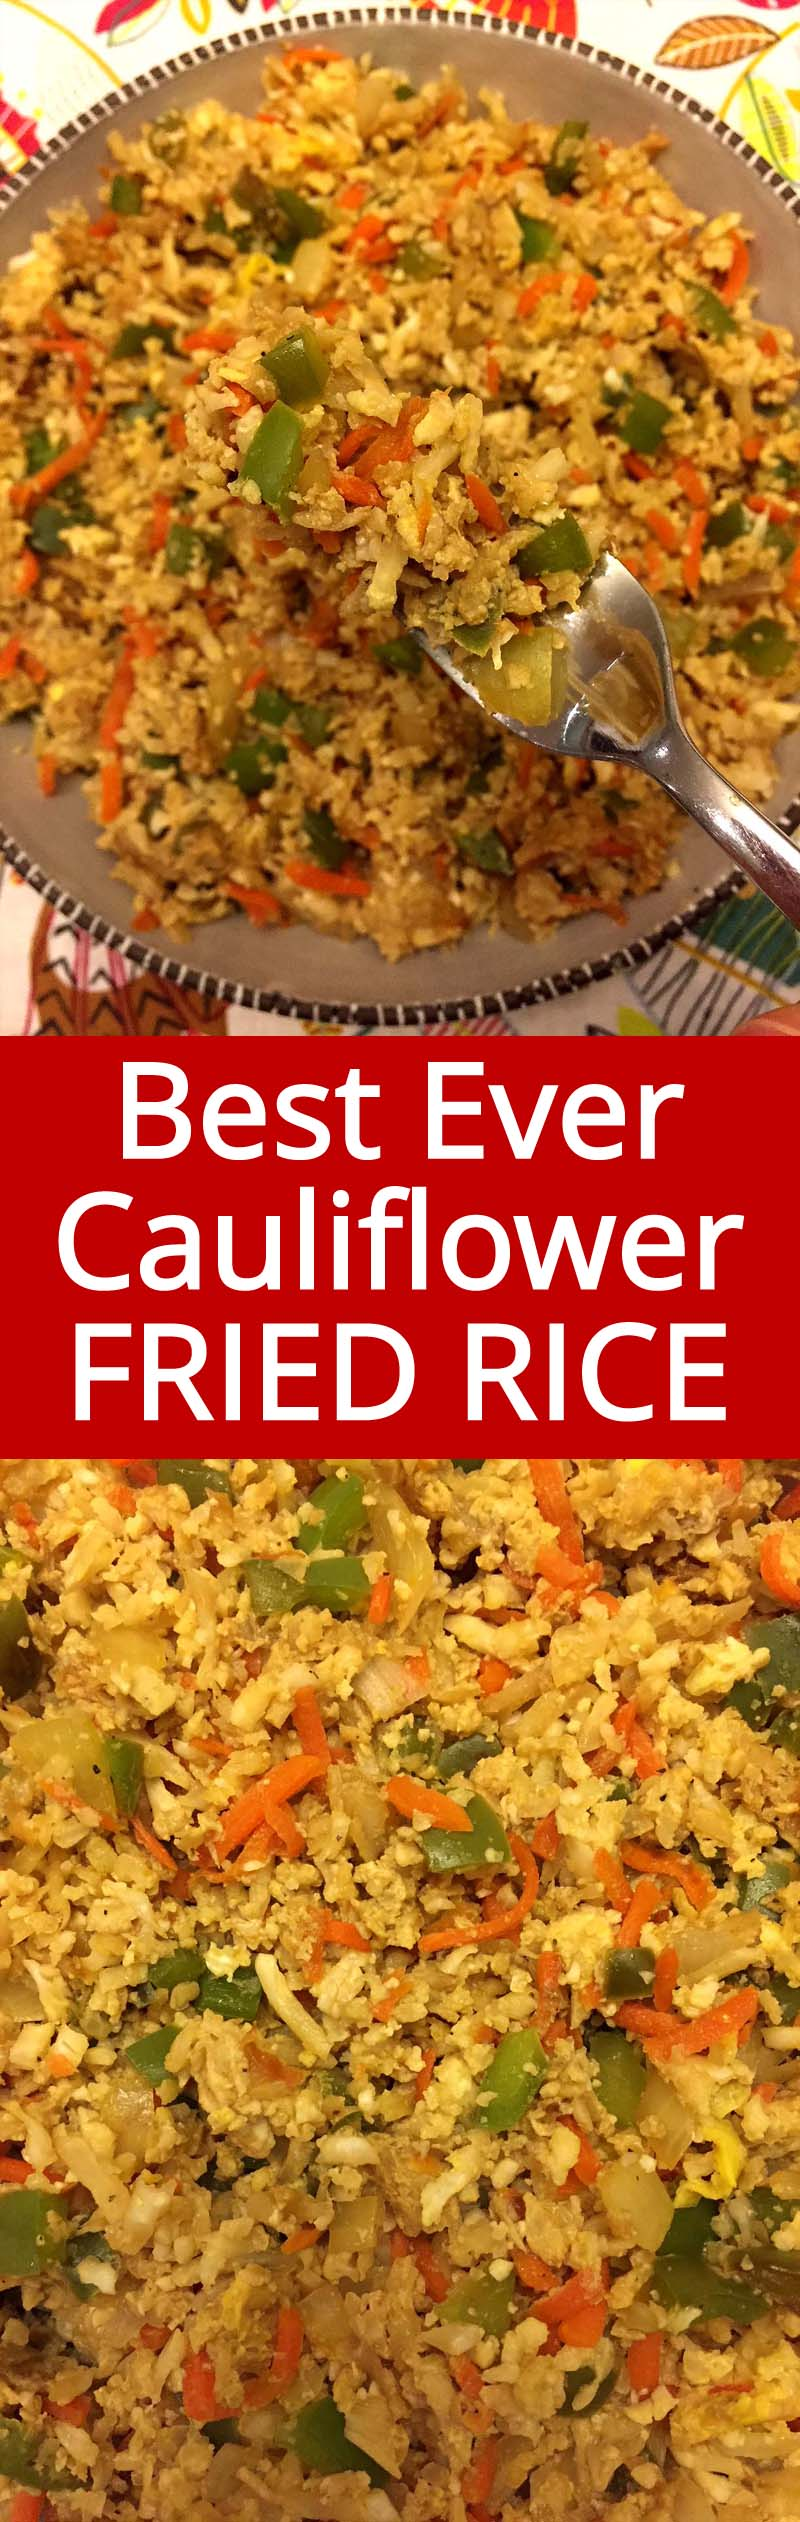 OMG this cauliflower fried rice is AMAZING! We all couldn't stop eating it! It tastes like real fried rice, best recipe ever!